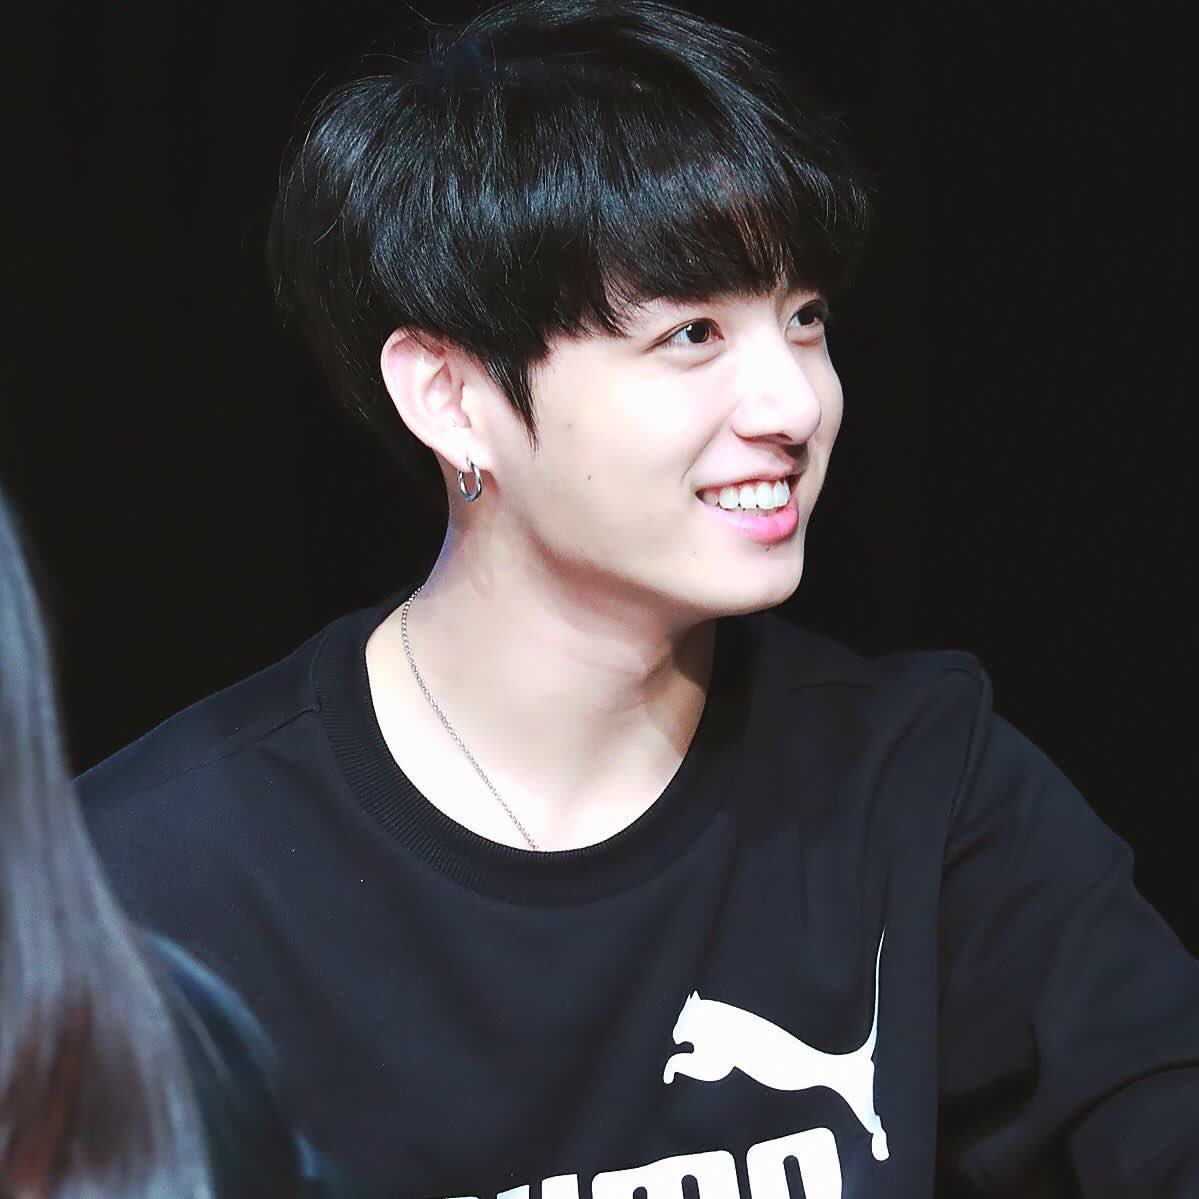 Jungkook Wallpaper Hd 2018: BTS Jungkook Dyed His Hair Black And Fans Think He Looks